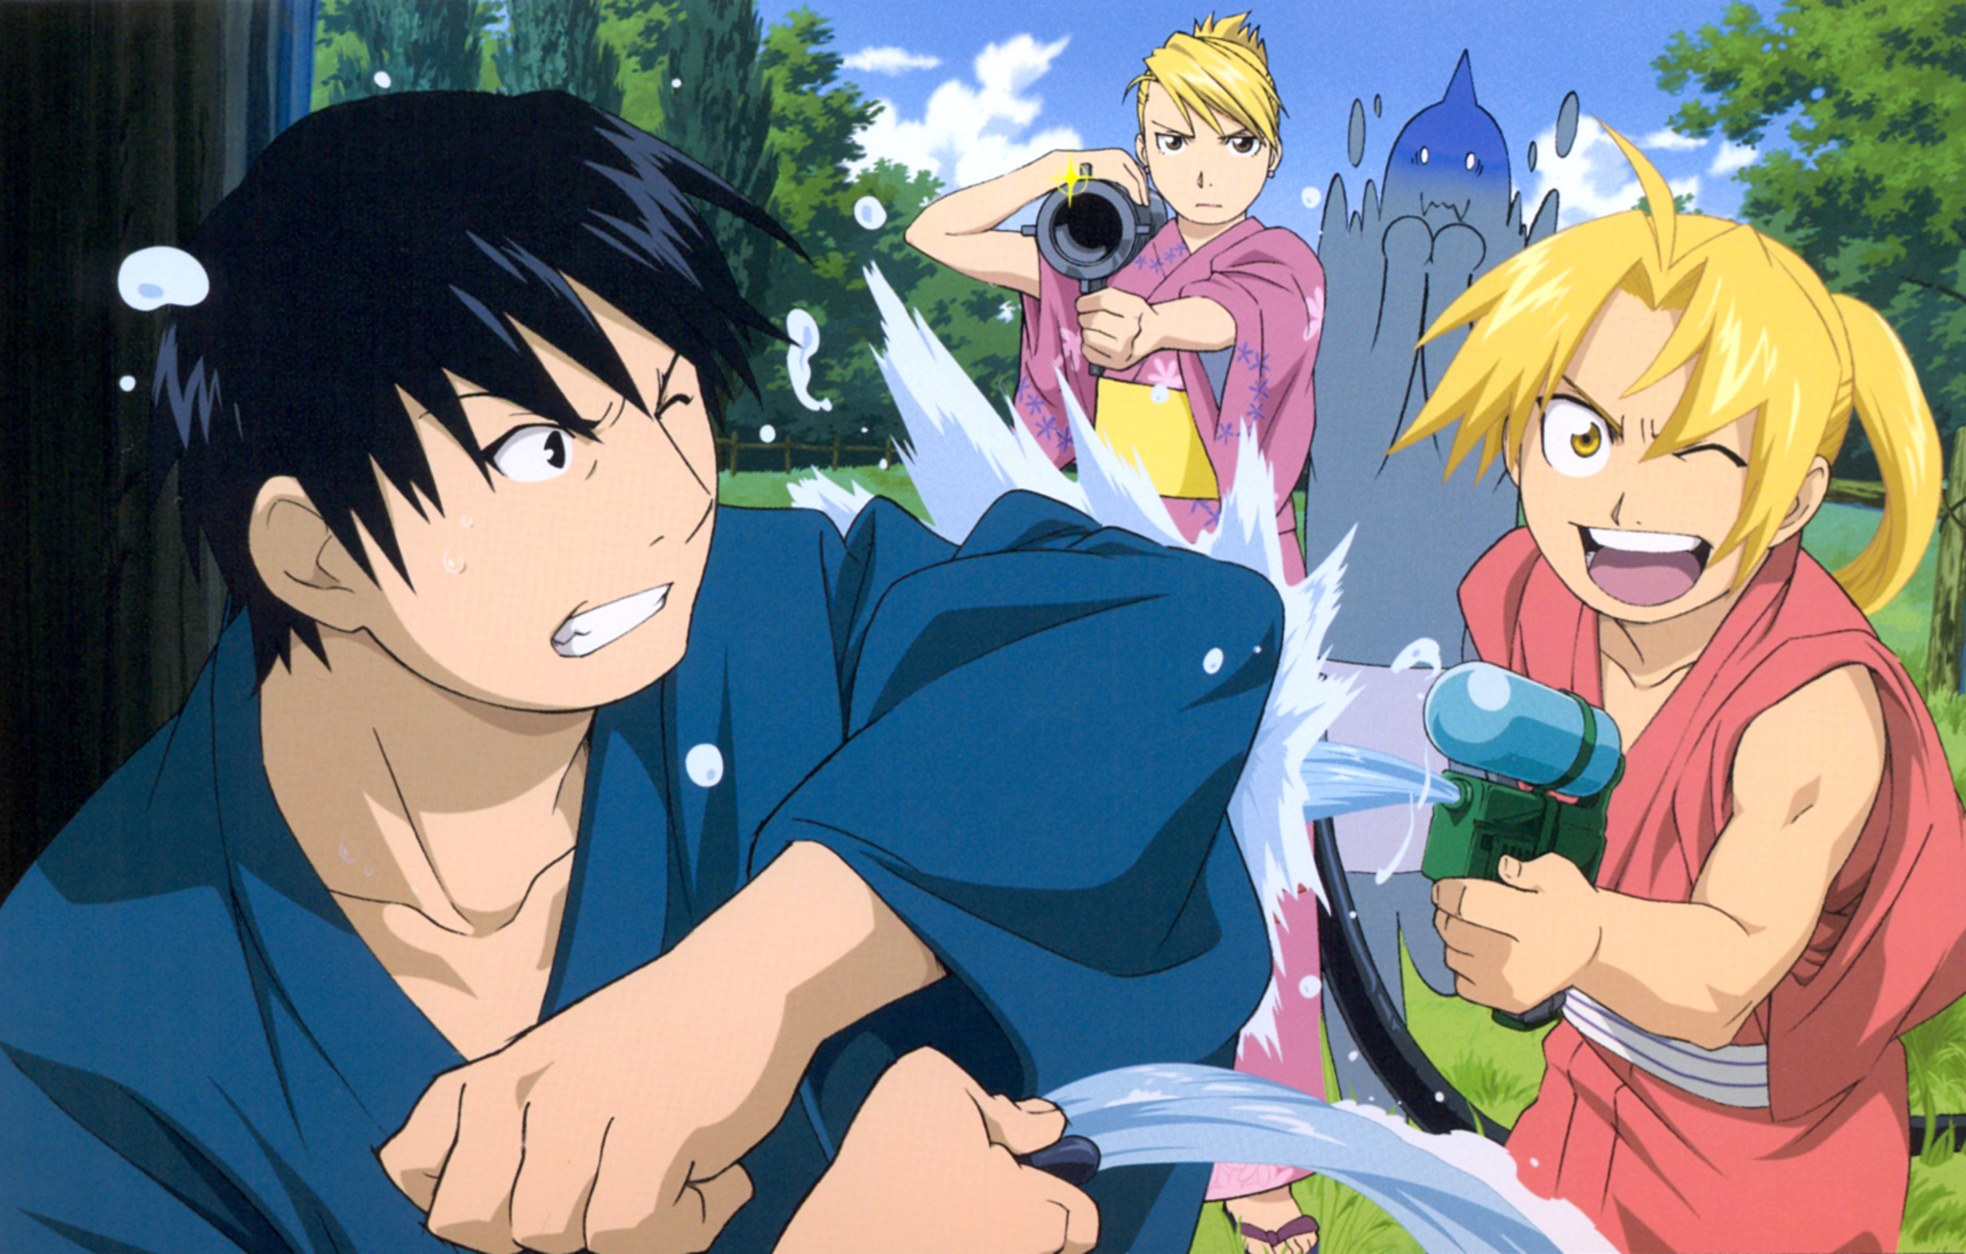 Fullmetal Alchemist promo art. Ed is laughing as he squirts Roy with a water gun. Roy looks annoyed and is trying to fend off the attack. In the background, Riza has a water-gun-bazooka on one shoulder and looks intense. Behind her, Al looks freaked out. They are all wearing yukata.